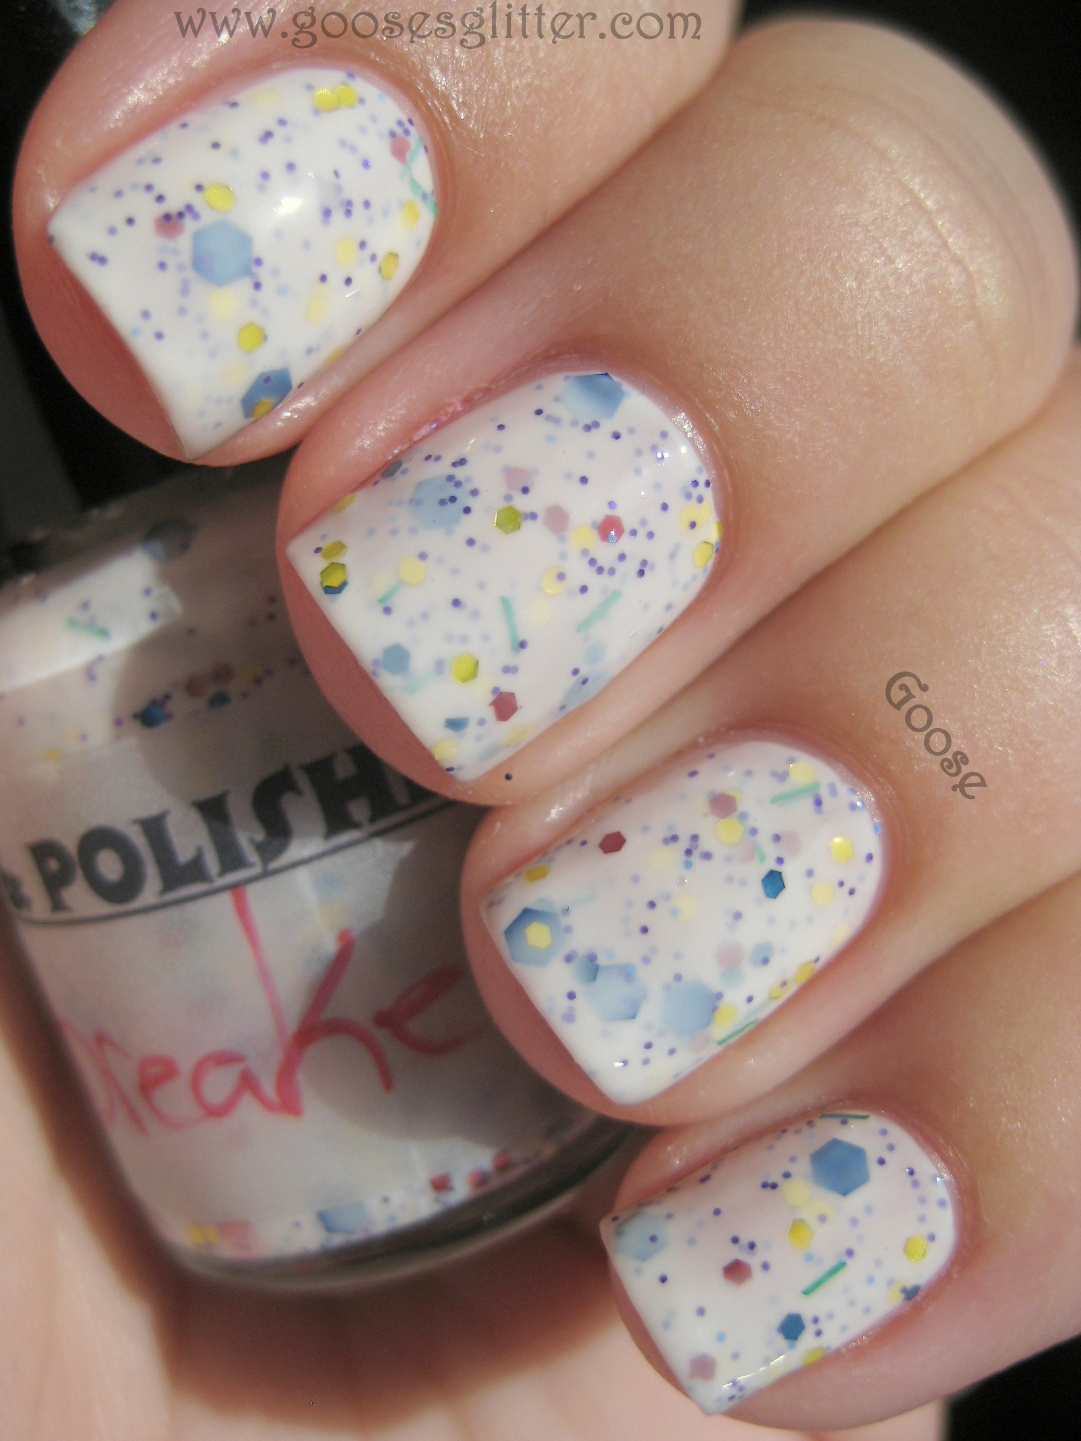 Goose\'s Glitter: Pretty & Polished - Jawbreaker: Swatches and Review